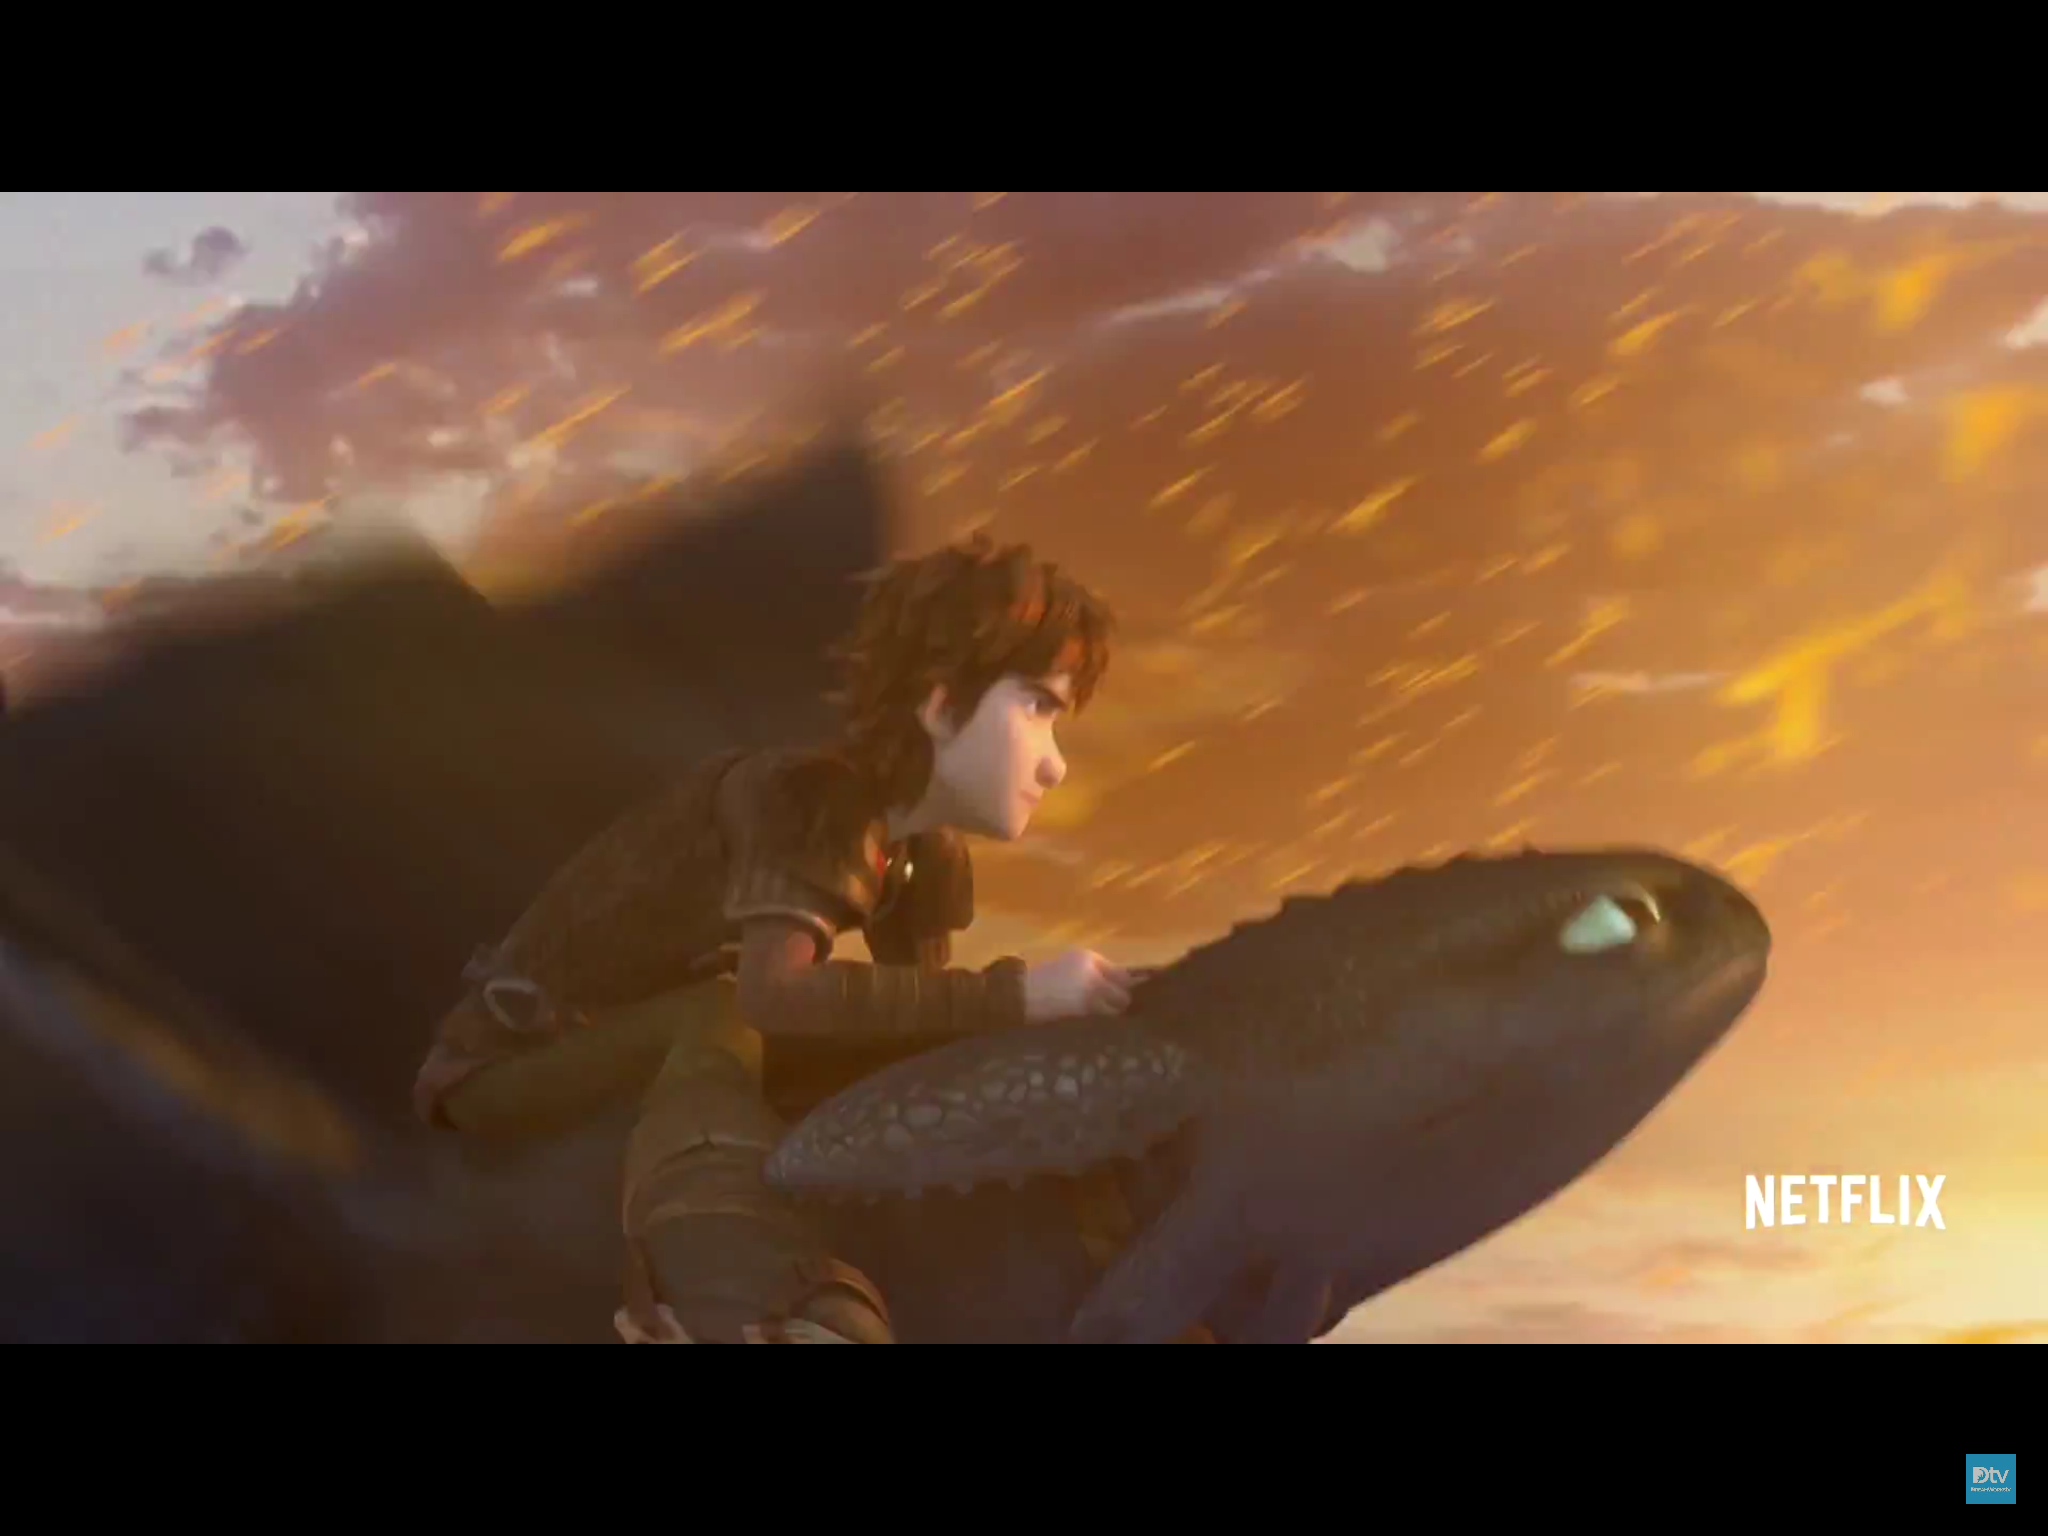 Toothless races through the fireworm cloud